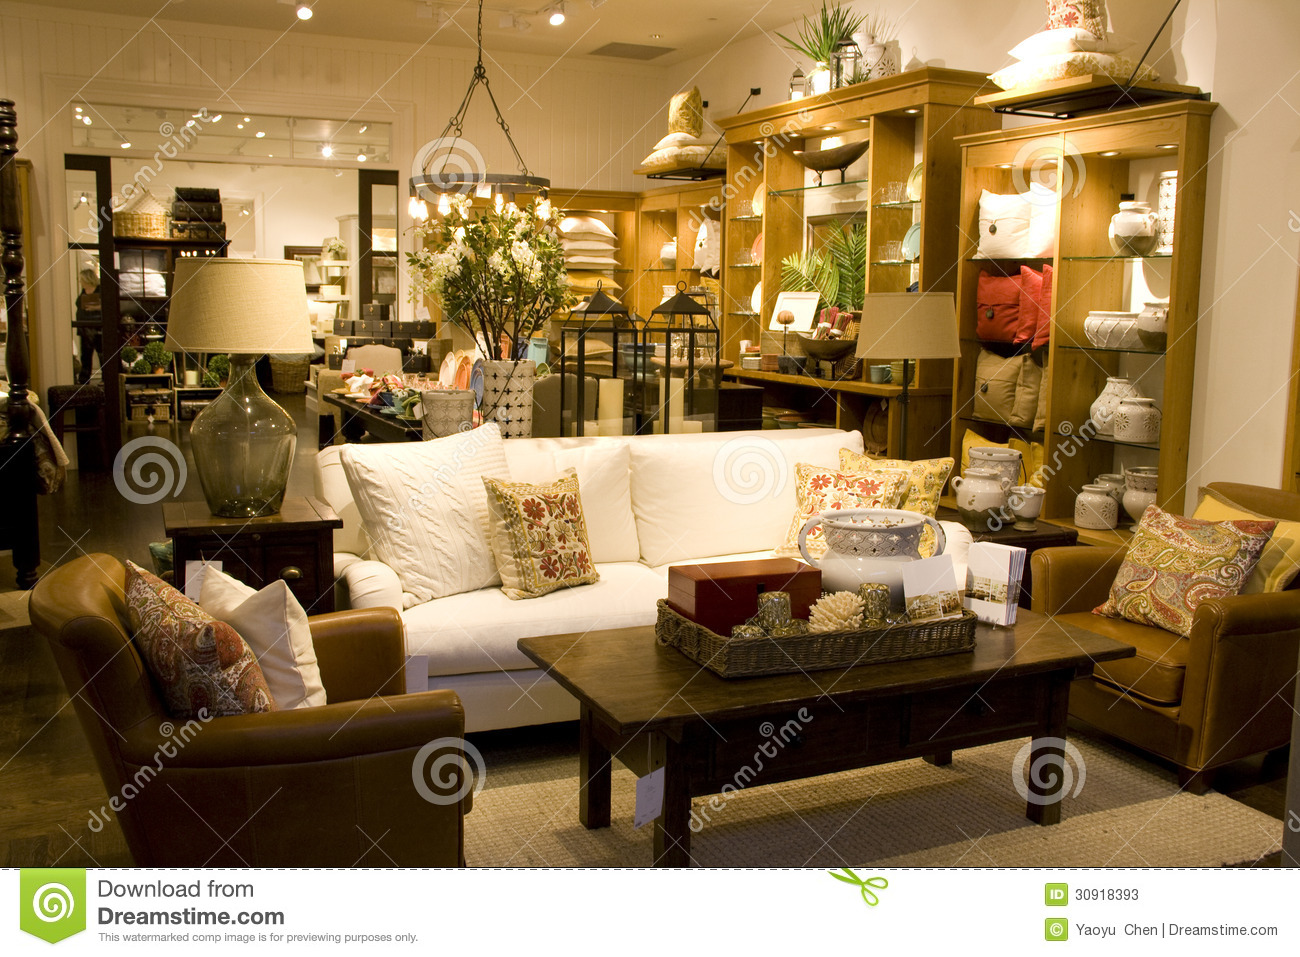 furniture and home decor store stock image image 30918393